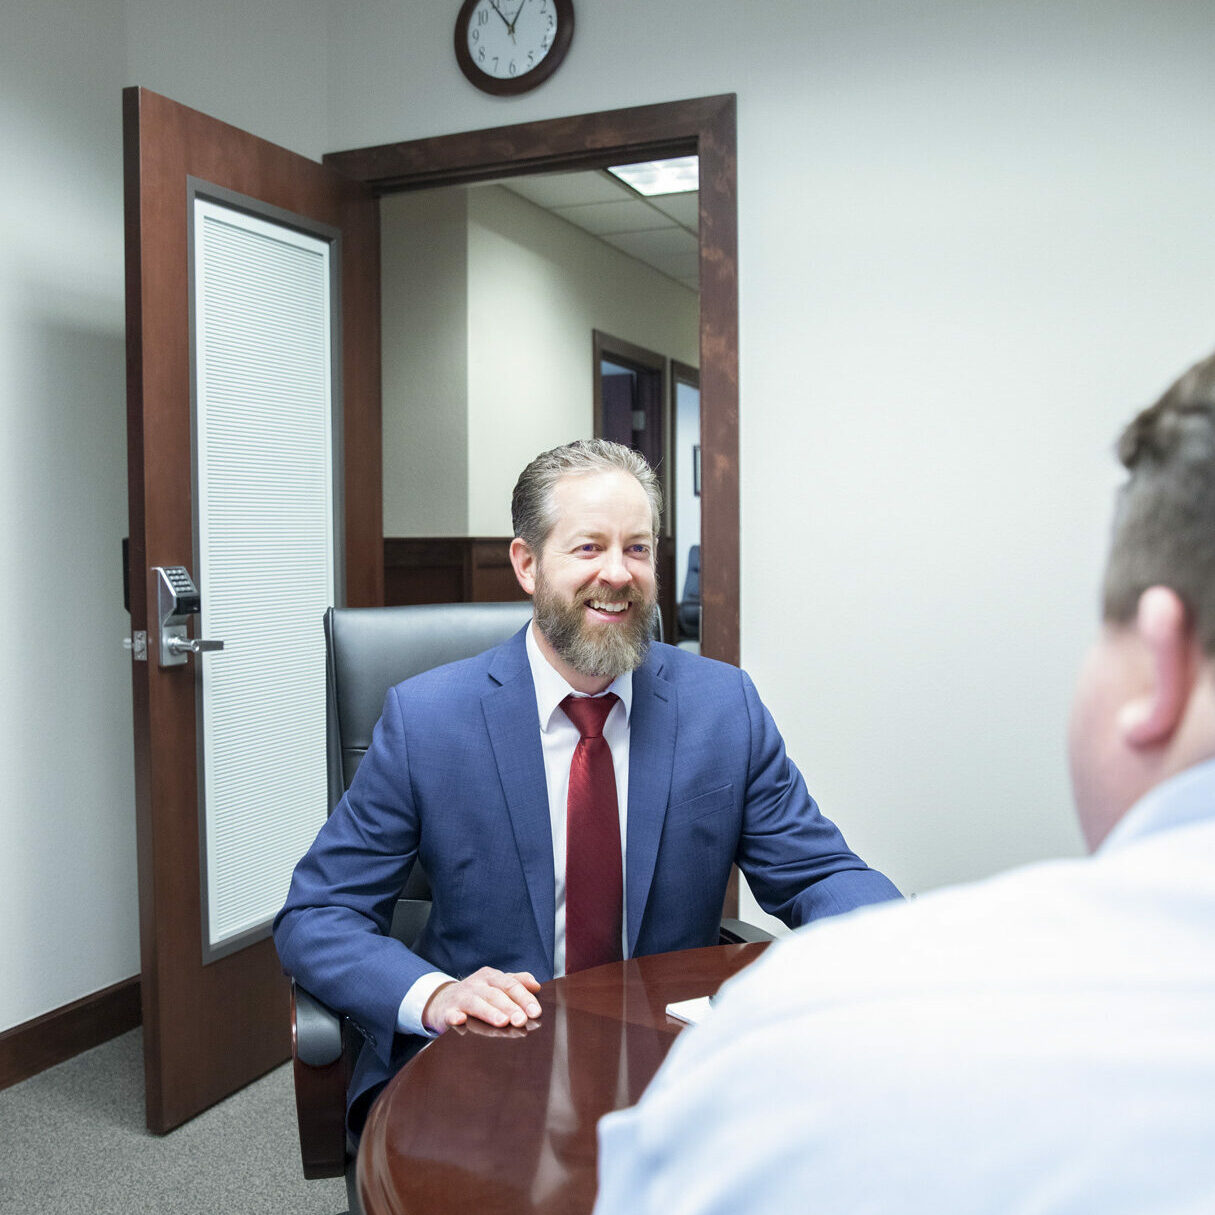 Image of Ben Messinger, CFP, financial advisor at HFG Trust talking with client at wooden table.